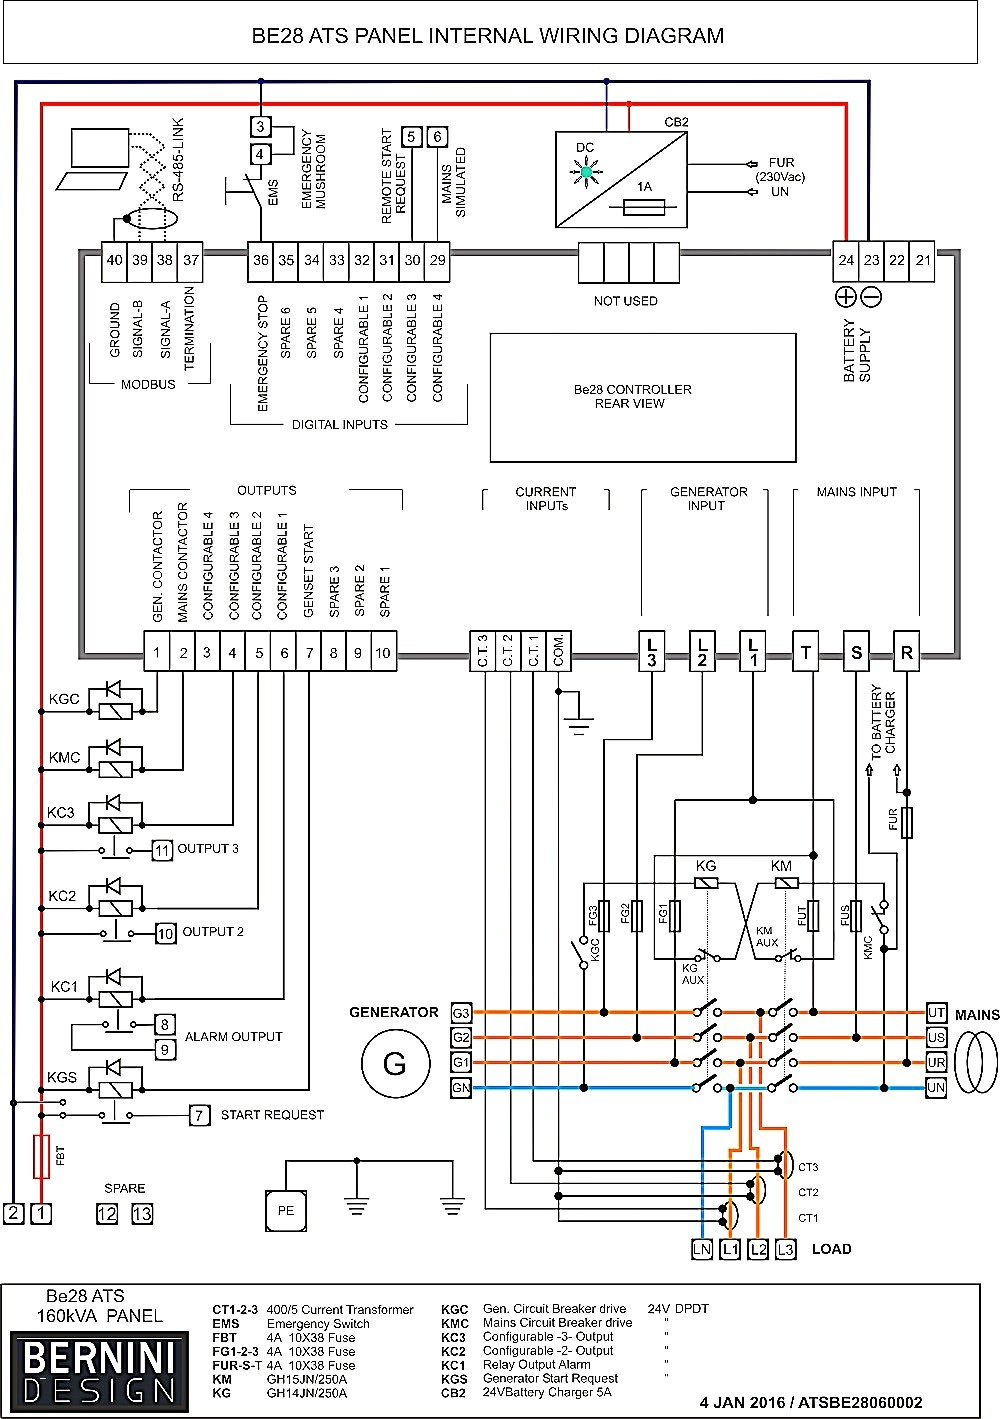 asco automatic transfer switch series 300 wiring diagram. Black Bedroom Furniture Sets. Home Design Ideas